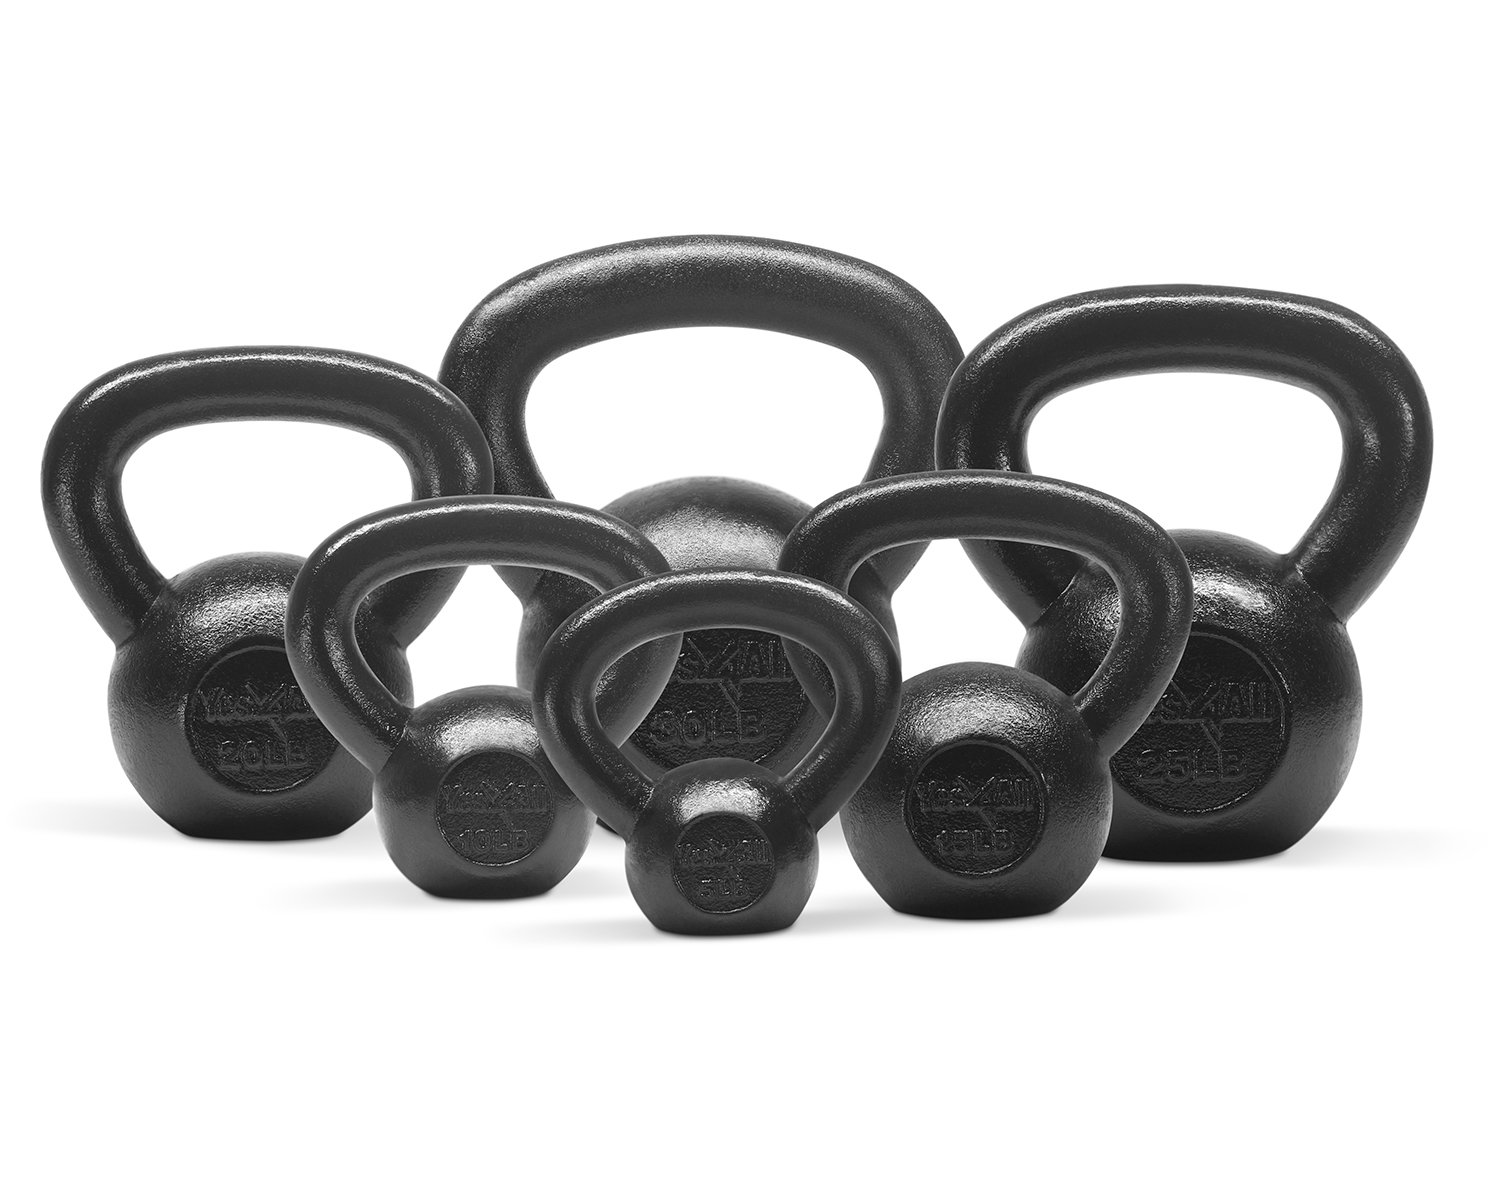 Yes4All Combo Cast Iron Kettlebell Weight Sets – Great for Full Body Workout and Strength Training – Kettlebells 5 10 15 20 25 30 lbs (Black)